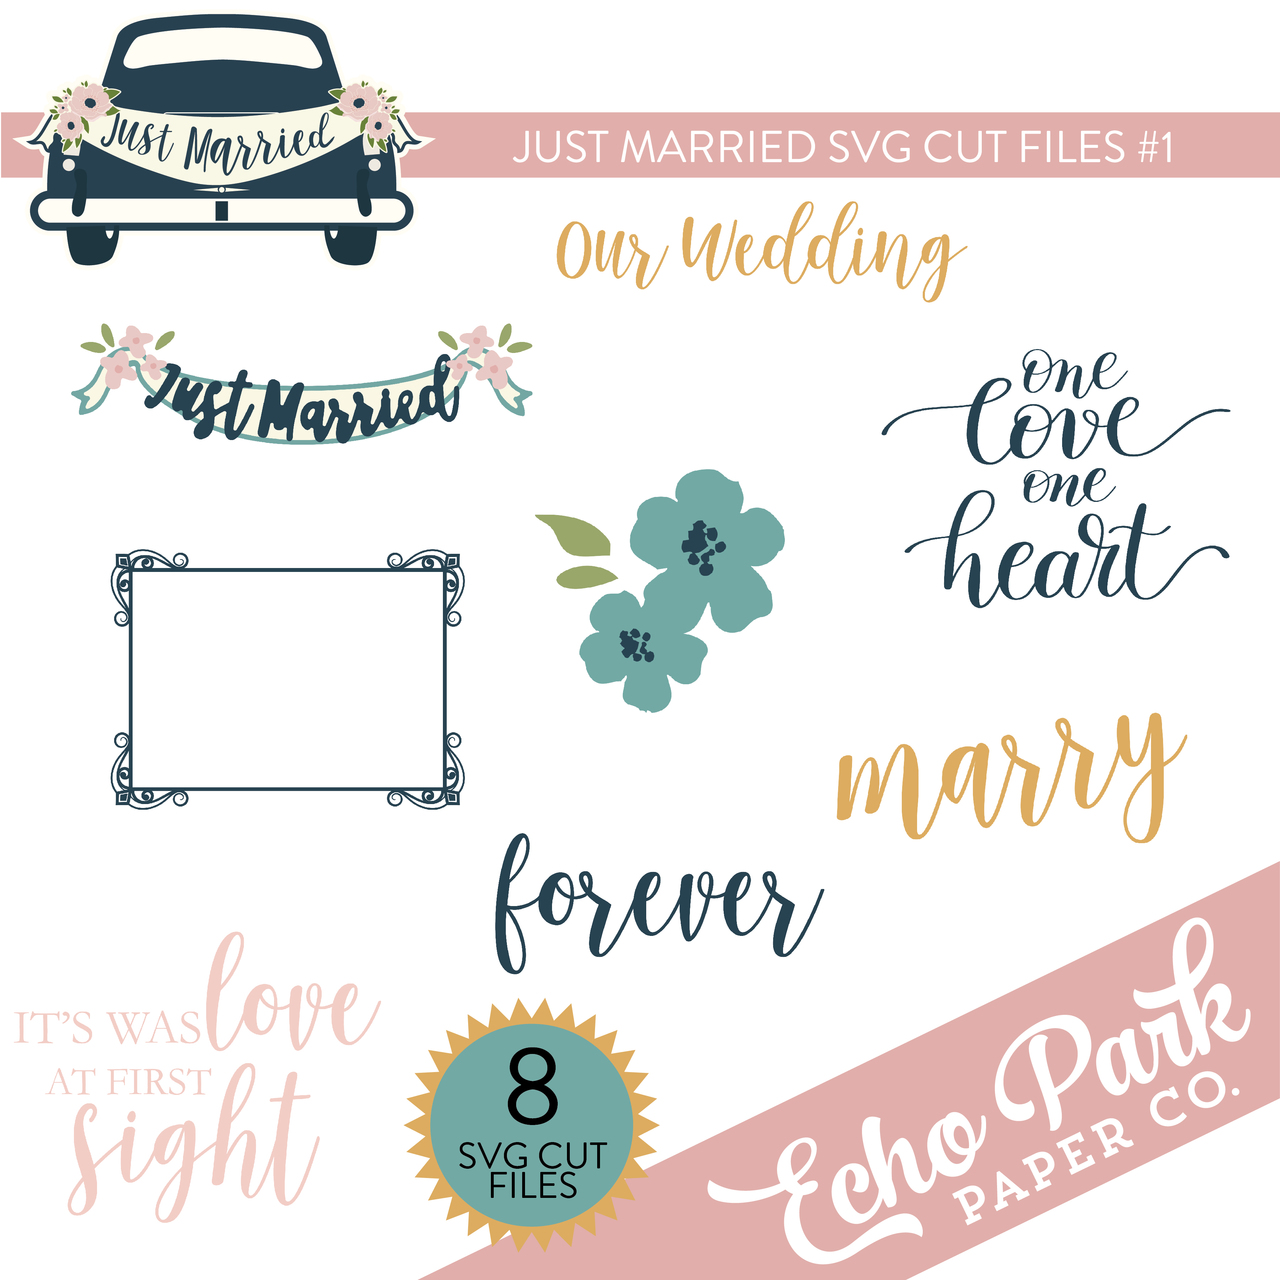 Just Married SVG Cut Files #1